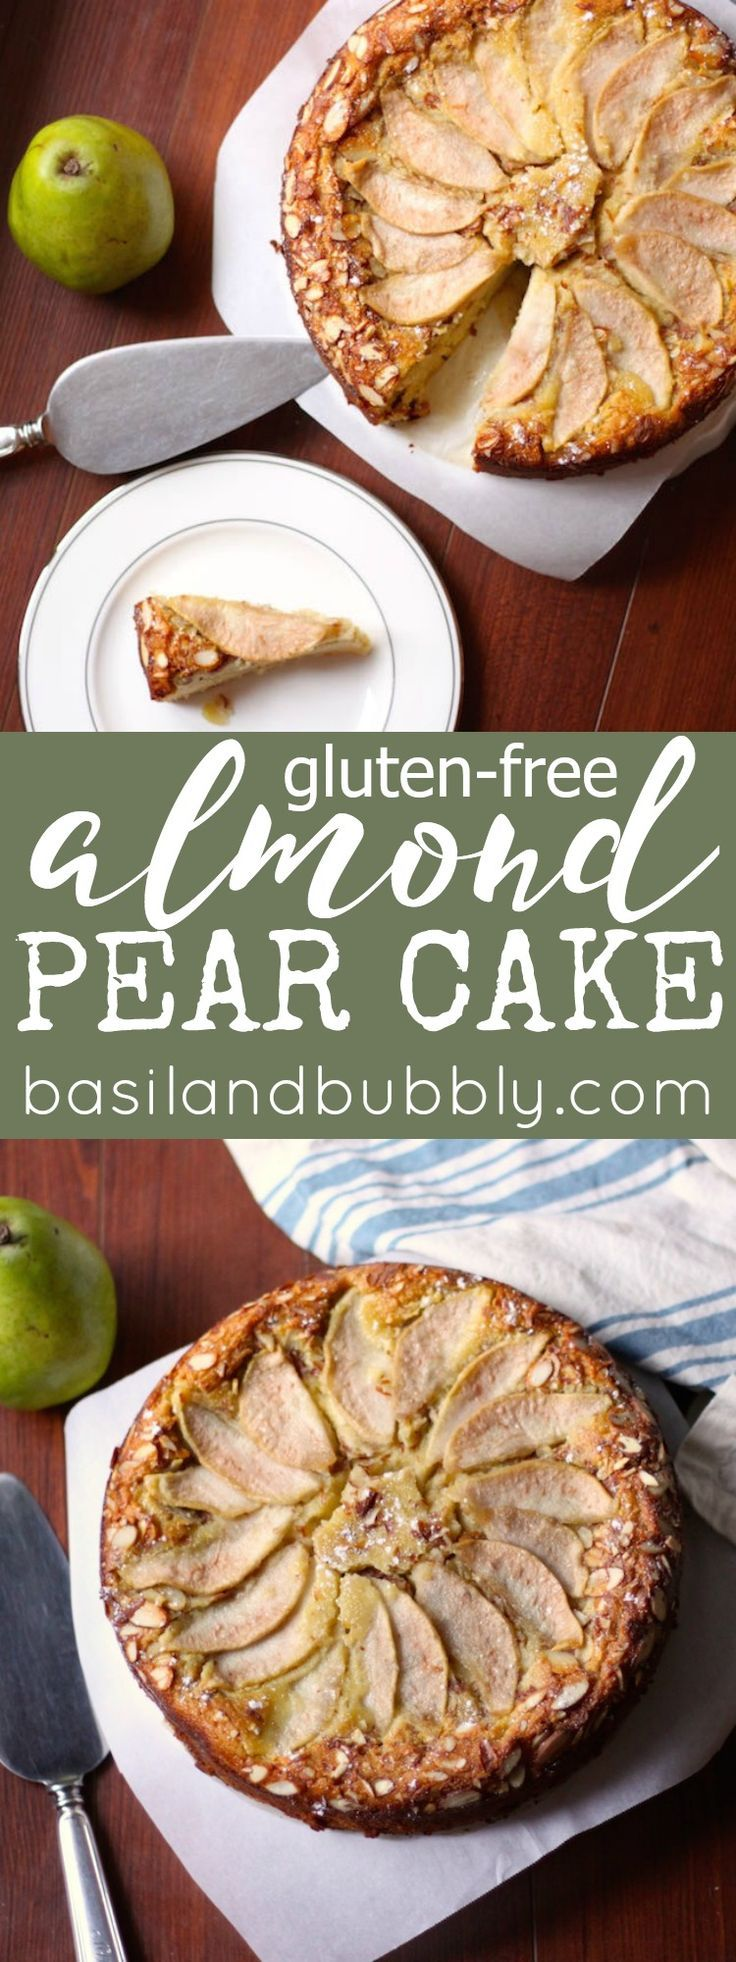 GF Almond Pear Cake.  Super moist, perfect for brunch or dessert.  Packed with fruit and completely gluten free.